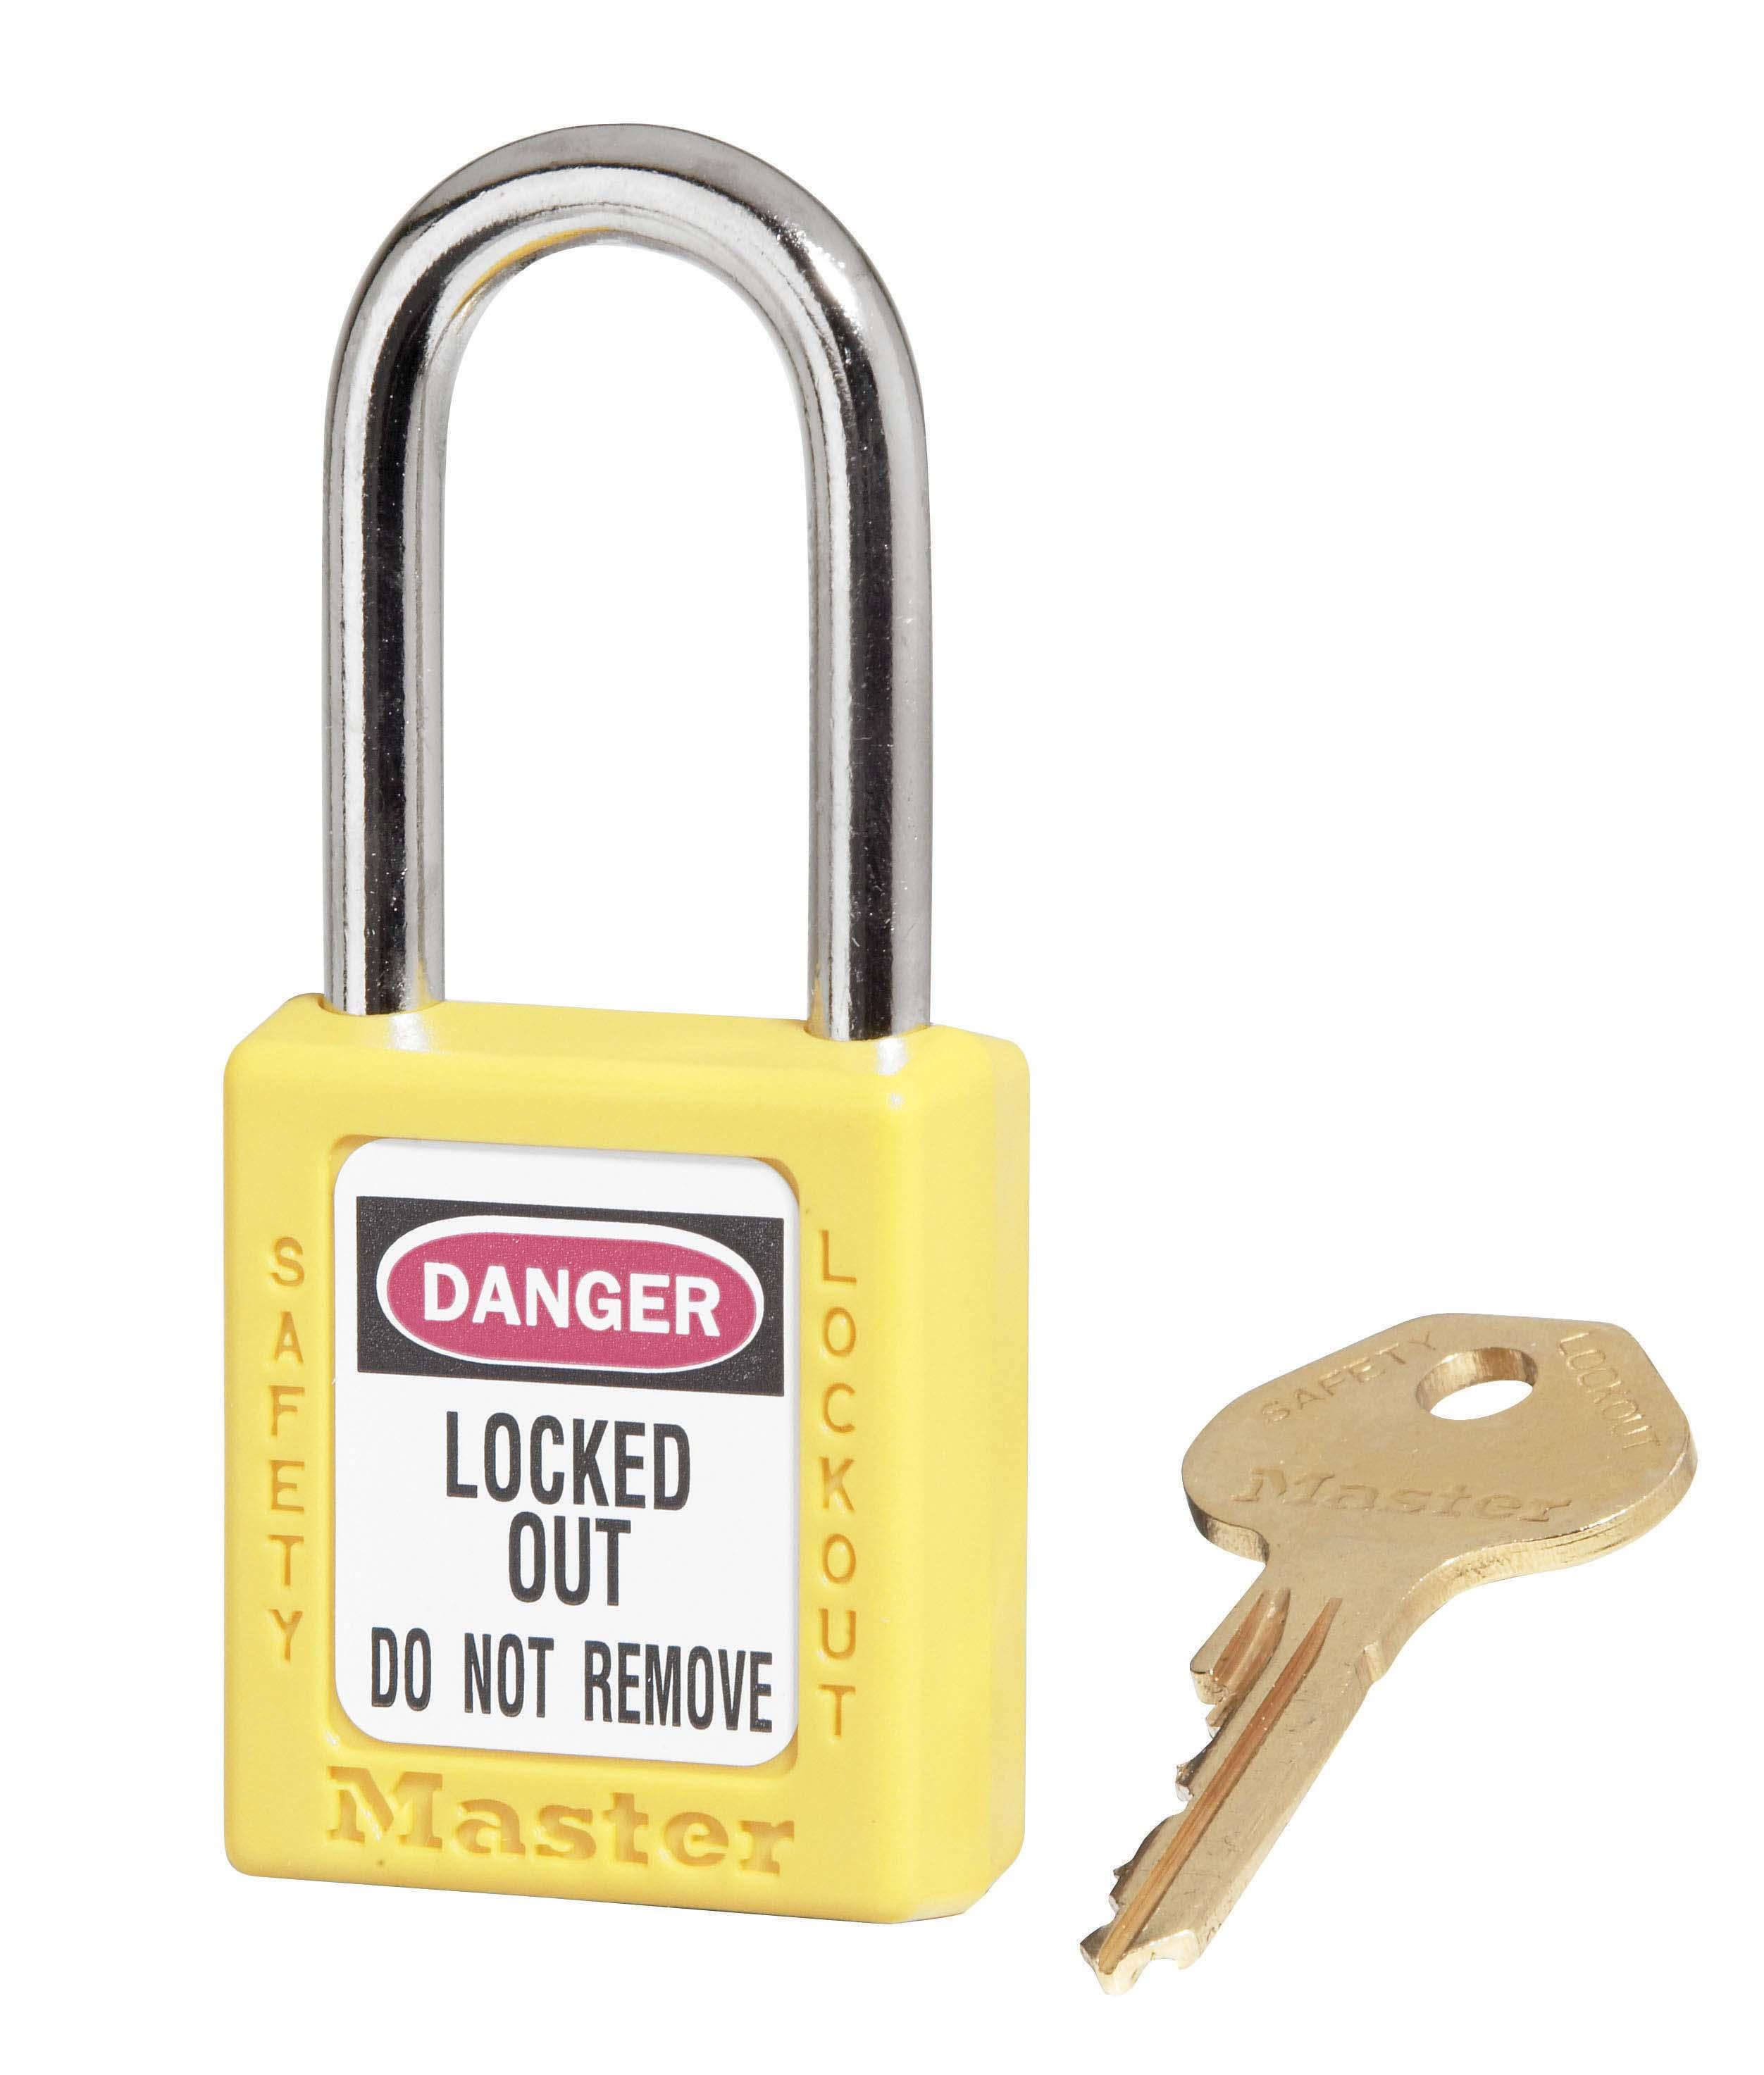 "410 Thermoplastic Safety Padlock. 1-1/2"" (3.8cm) wide 1-3/4"" (4.4cm) tall"